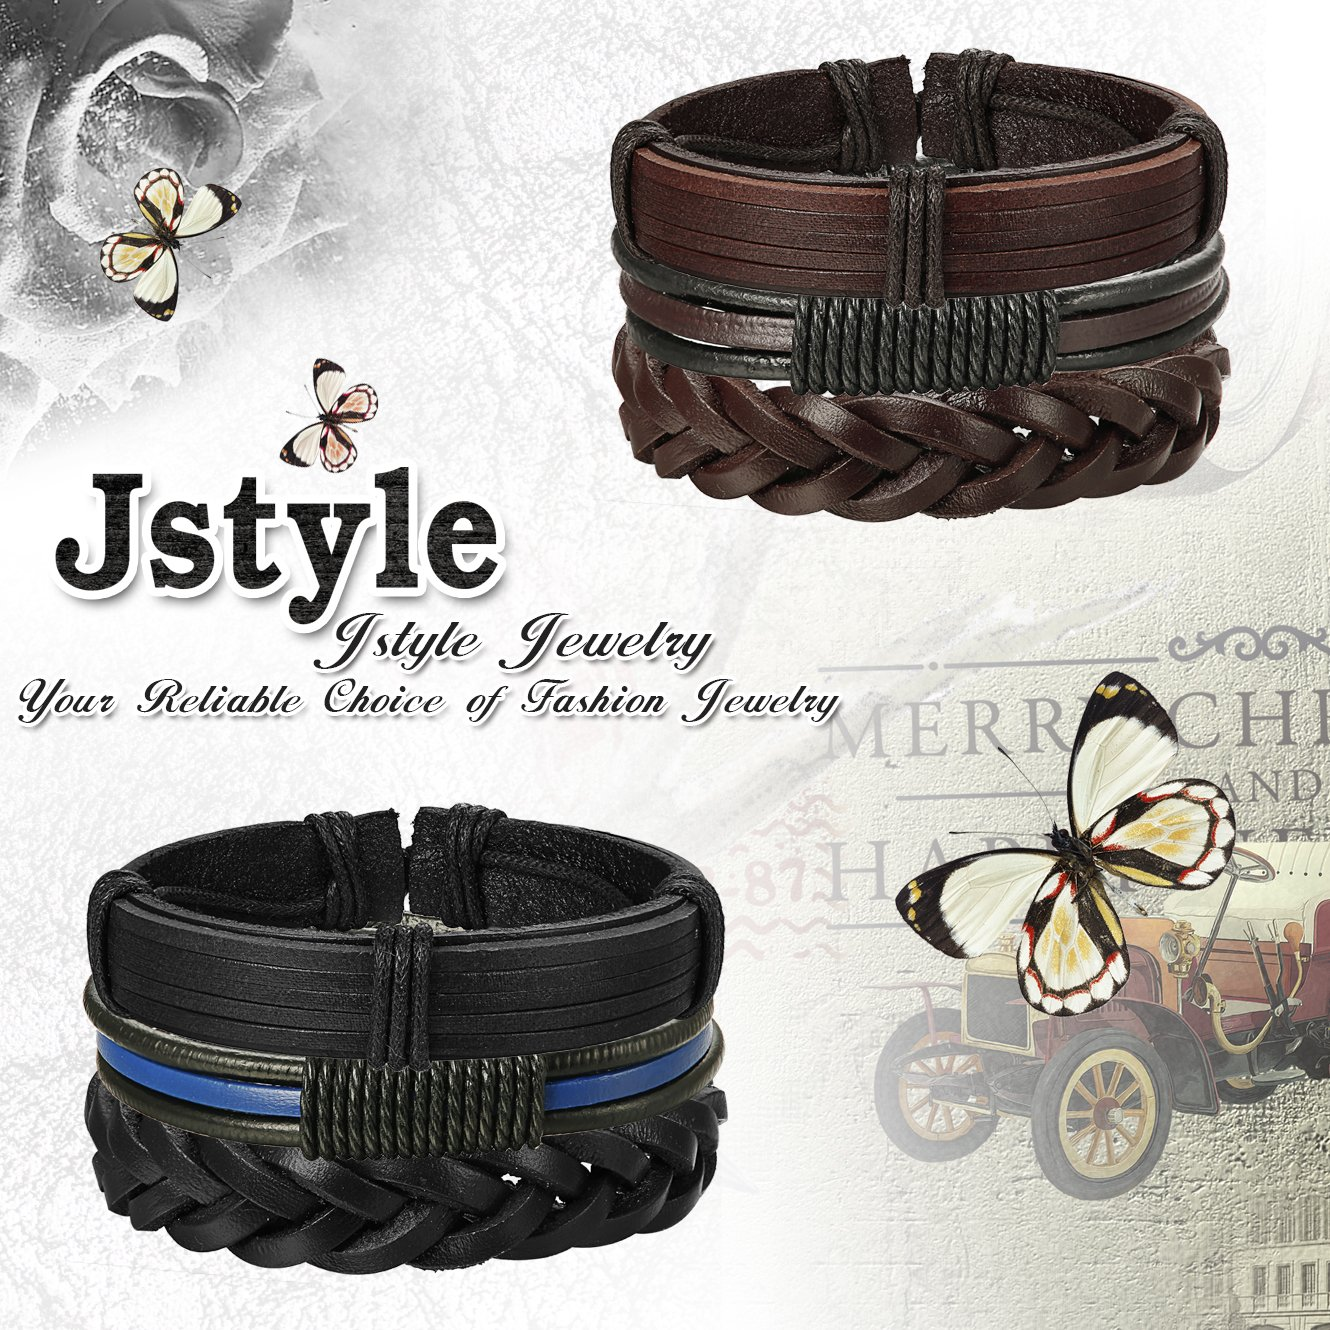 Jstyle 12Pcs Braided Leather Bracelet for Men Women Cuff Wrap Bracelet Adjustable Black and Brown (A:12Pcs) by Jstyle (Image #5)